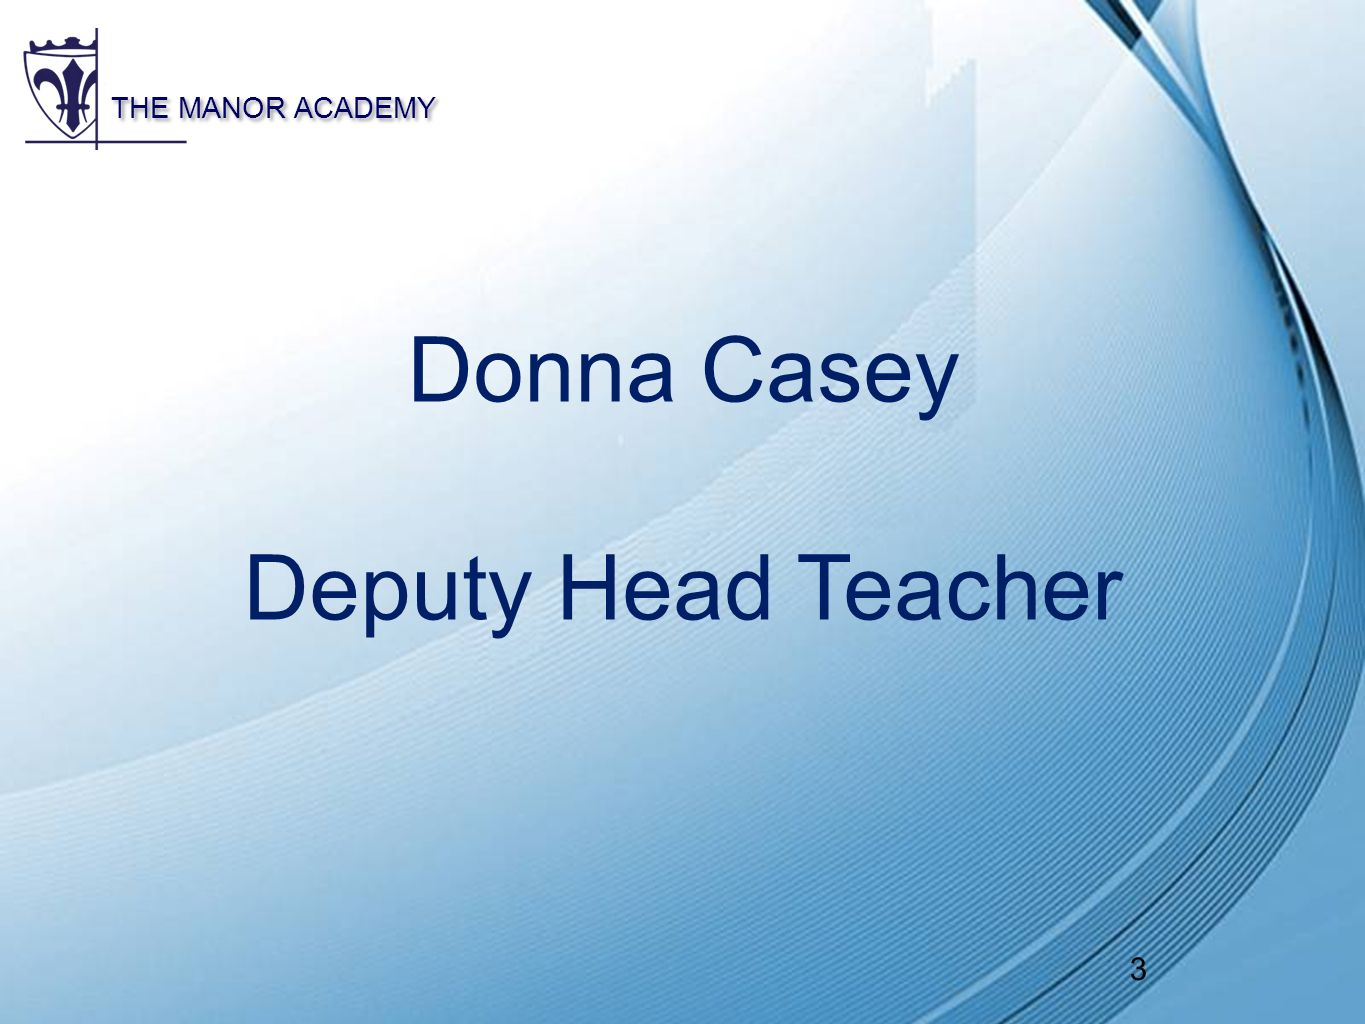 1 powerpoint templates the manor academy 1 happiness confidence 2 2 powerpoint templates the manor academy 3 donna casey deputy head teacher alramifo Gallery